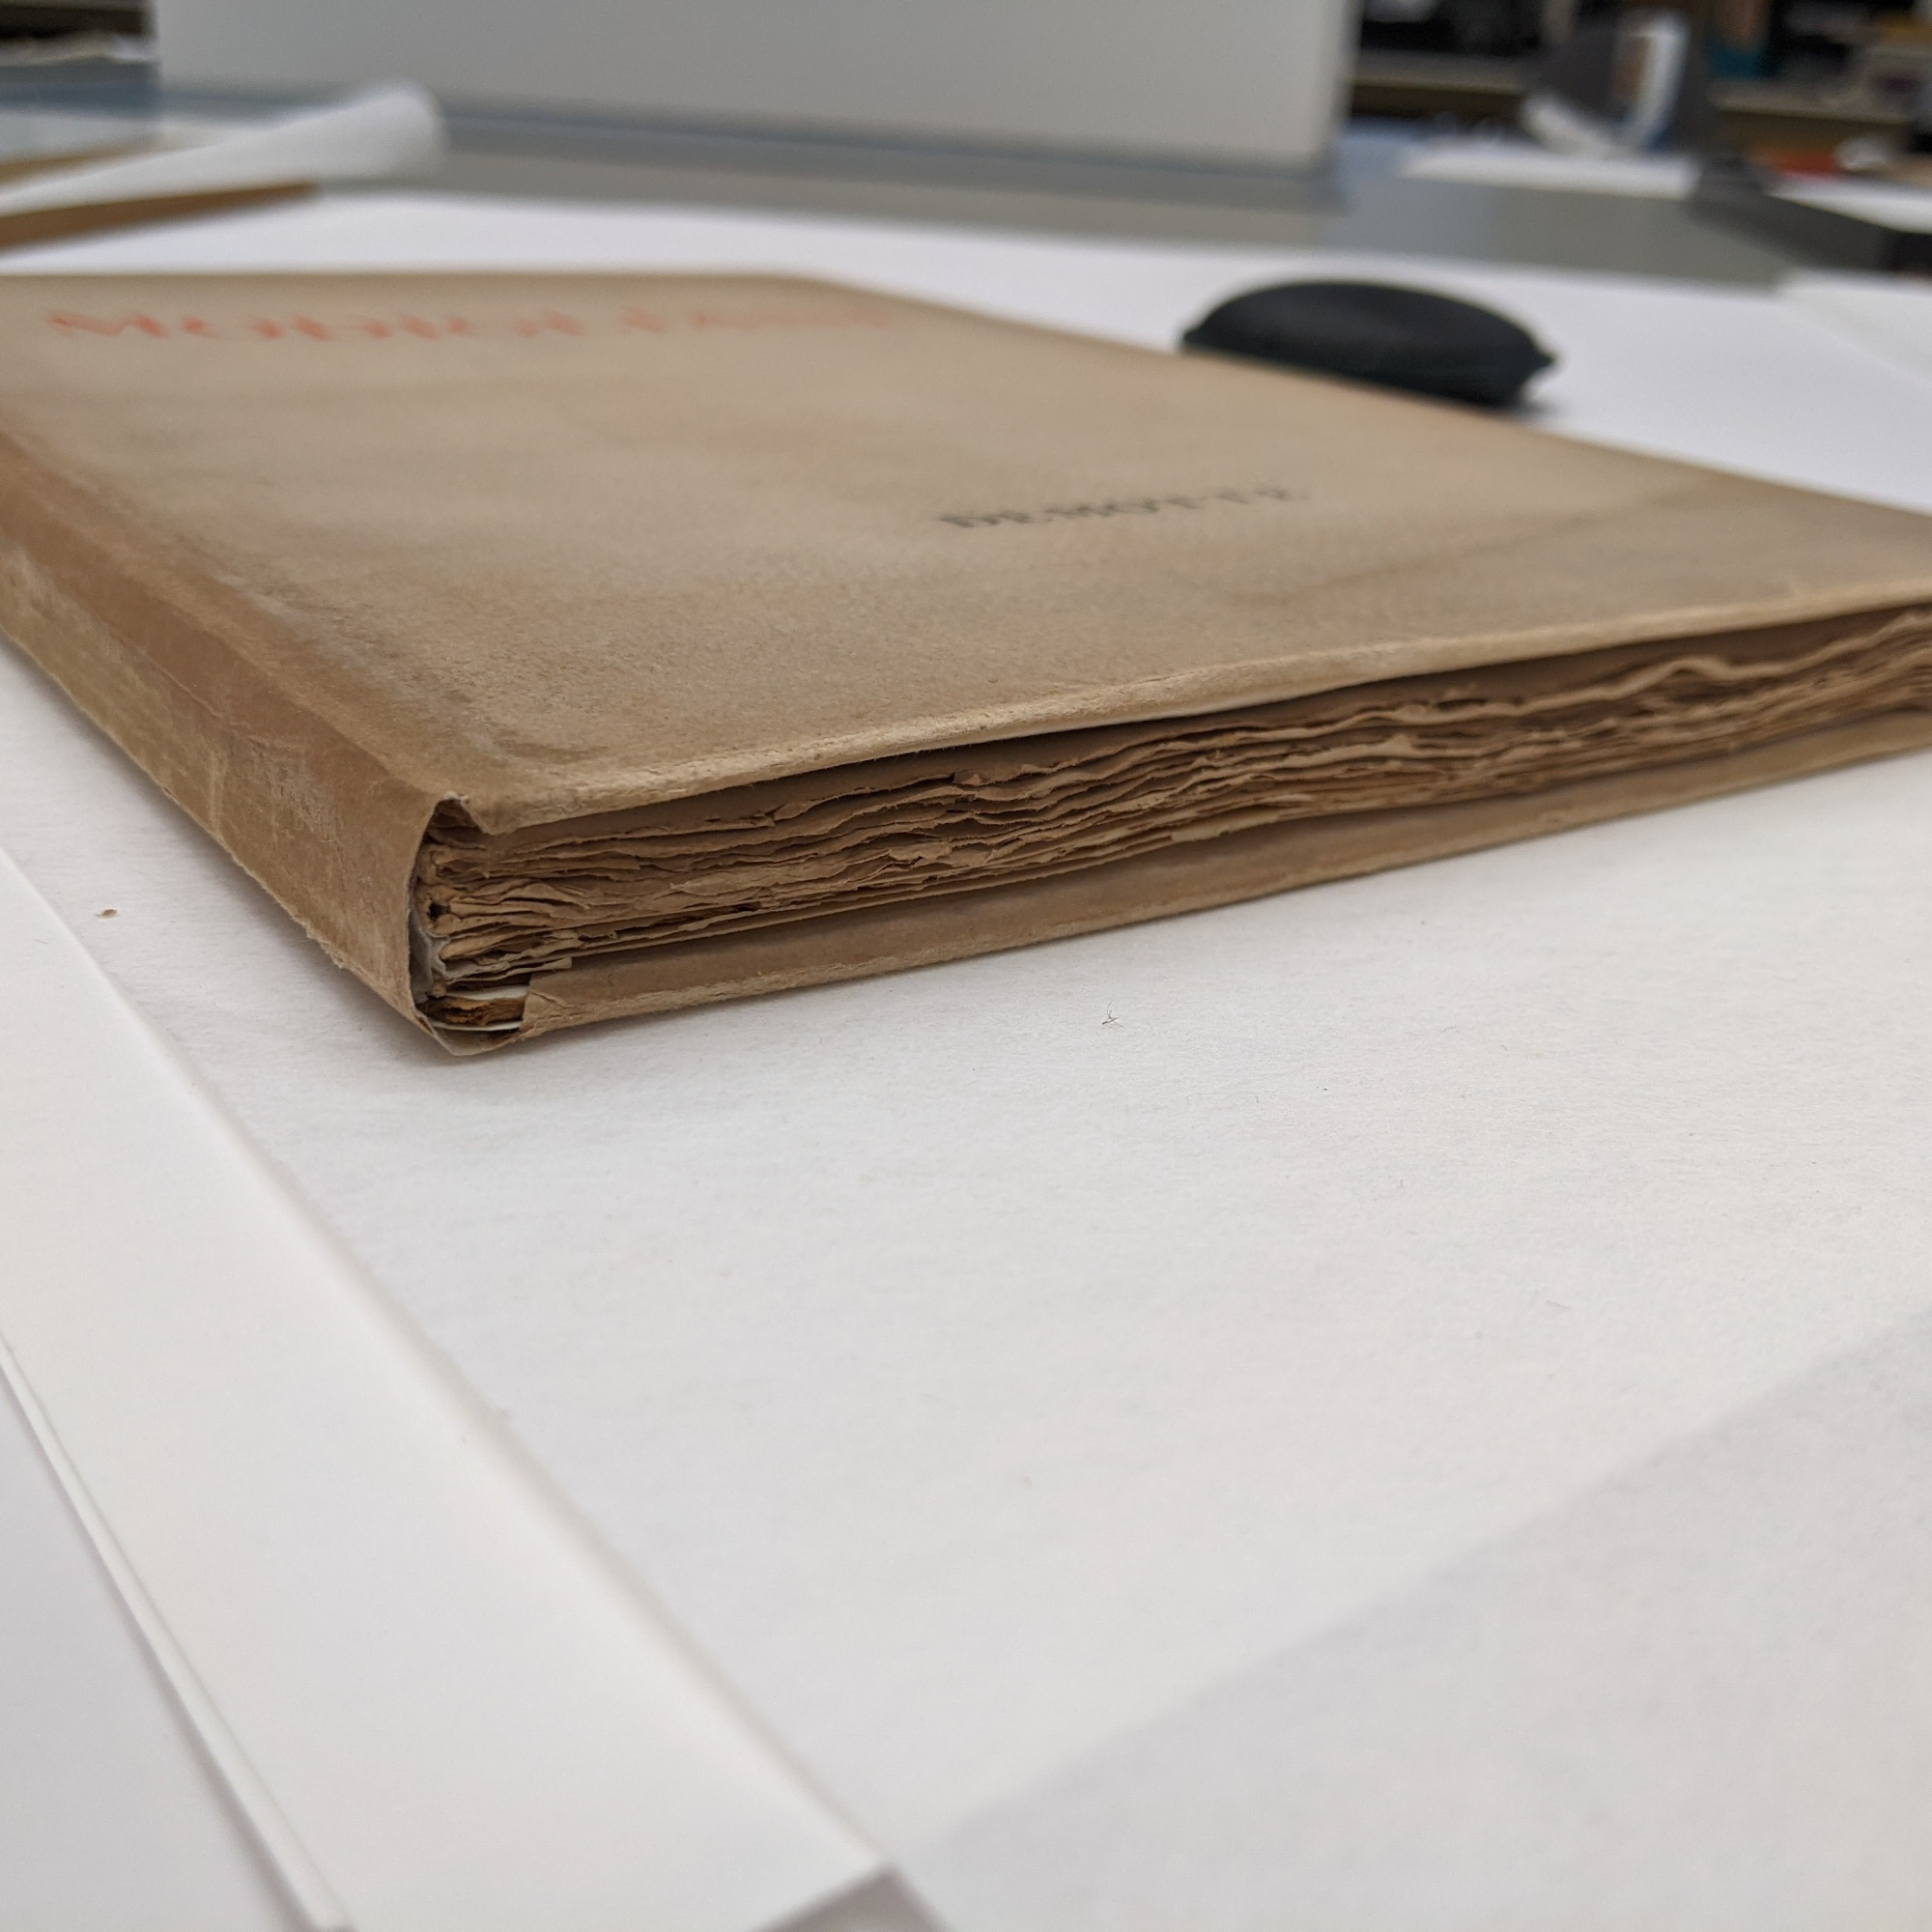 The image shows a view of the finished book from the bottom edge. You can see the rough cut edges of the books pages and the newly repaired dust jacket wrapped around the book.